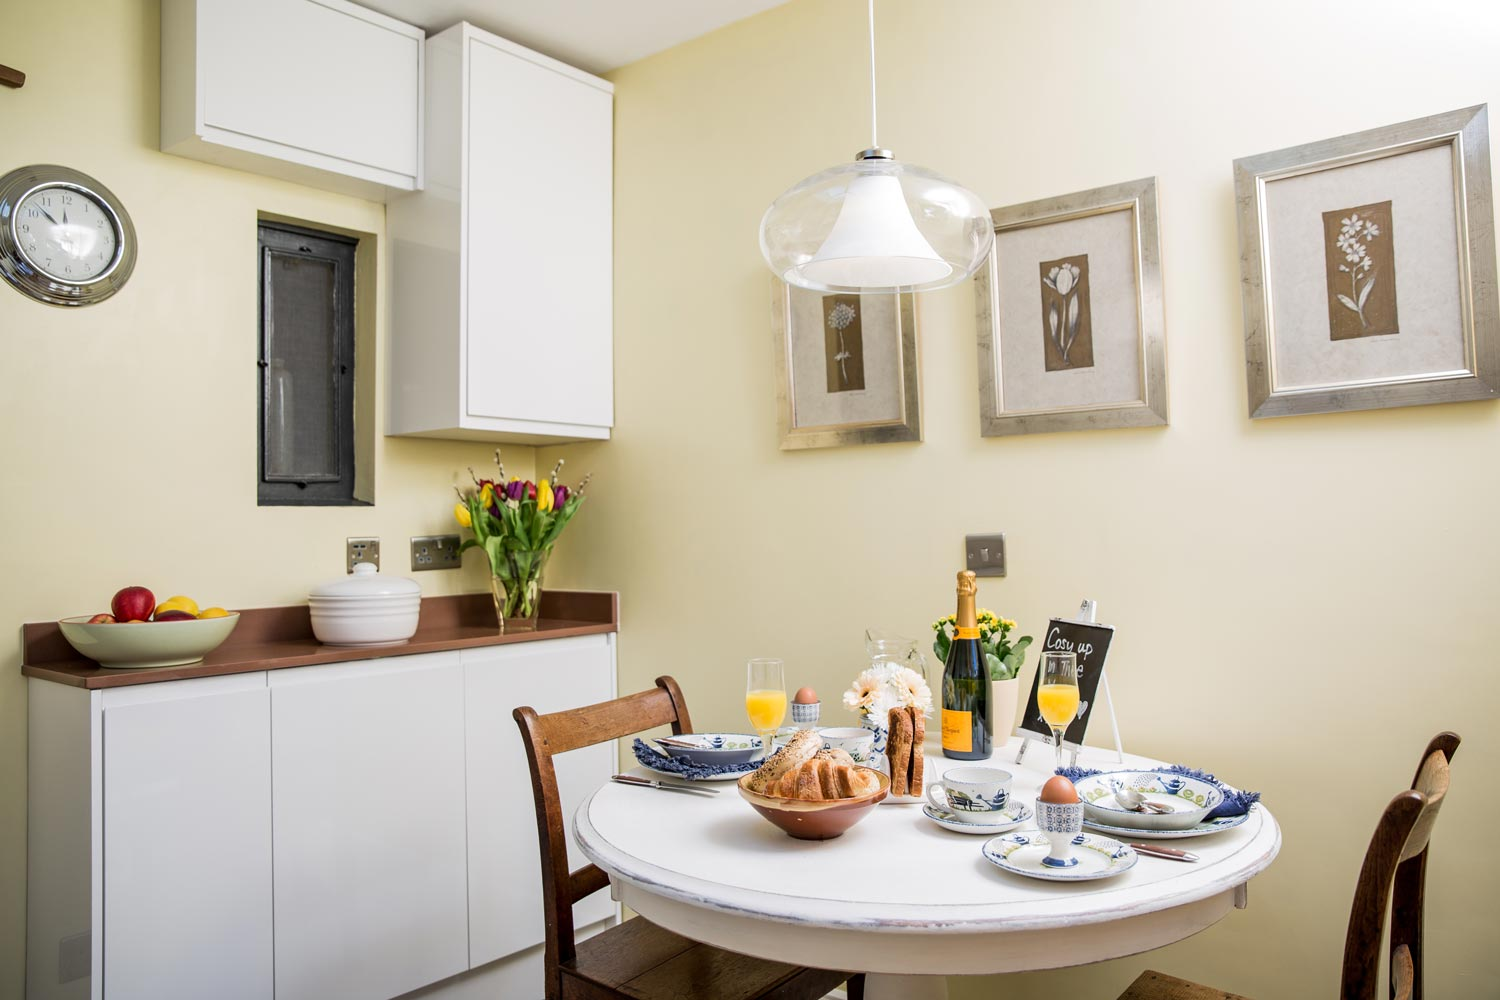 Spacious kitchen diner with everything you need for a light breakfast or hearty dinner